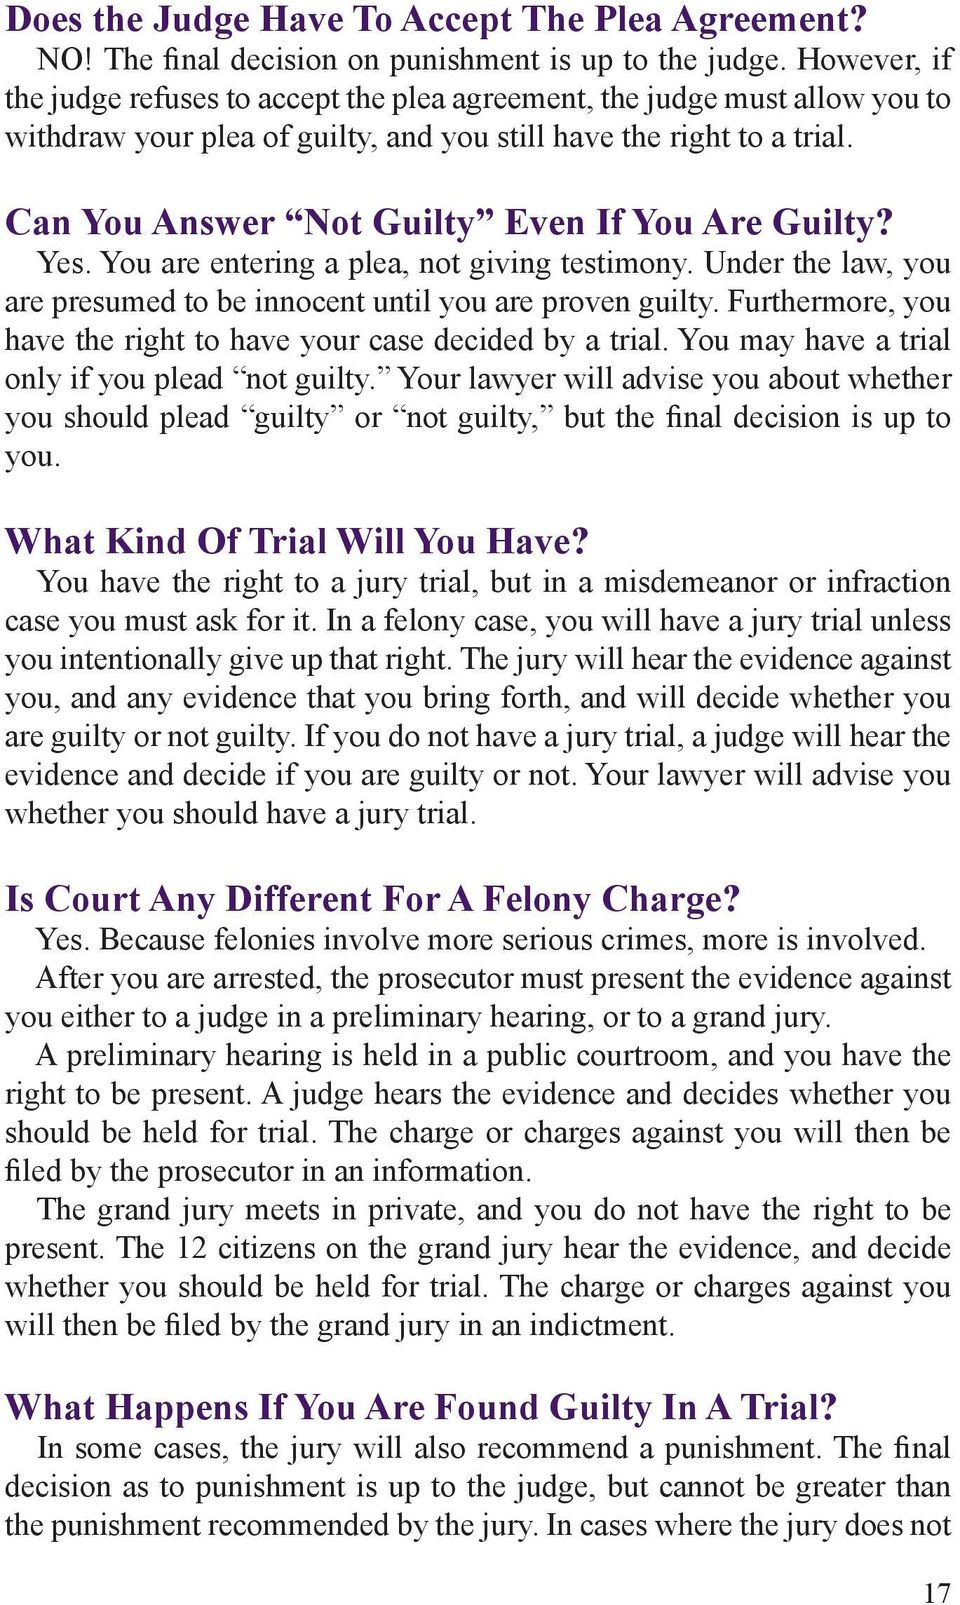 Can You Answer Not Guilty Even If You Are Guilty? Yes. You are entering a plea, not giving testimony. Under the law, you are presumed to be innocent until you are proven guilty.